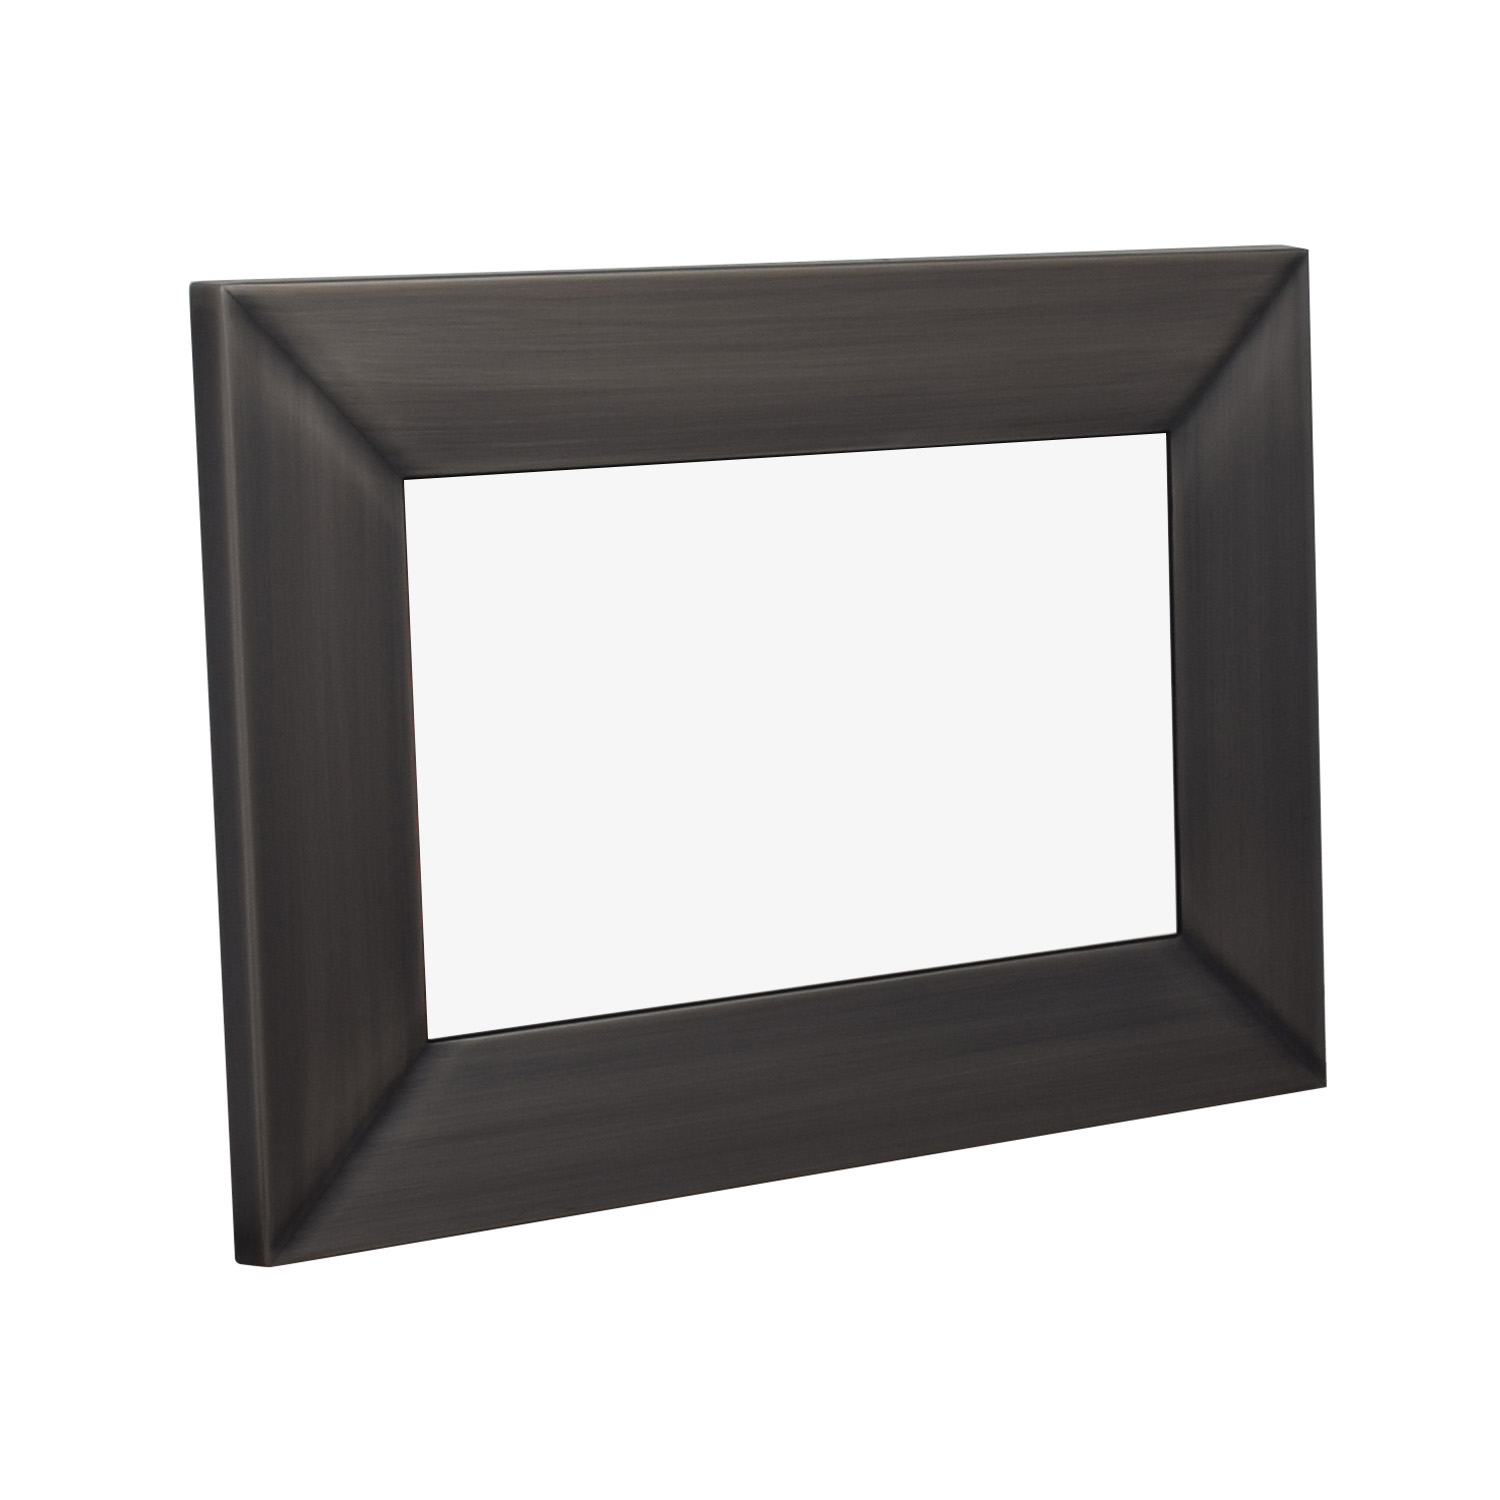 Desiron Steel Framed Mirror / Mirrors